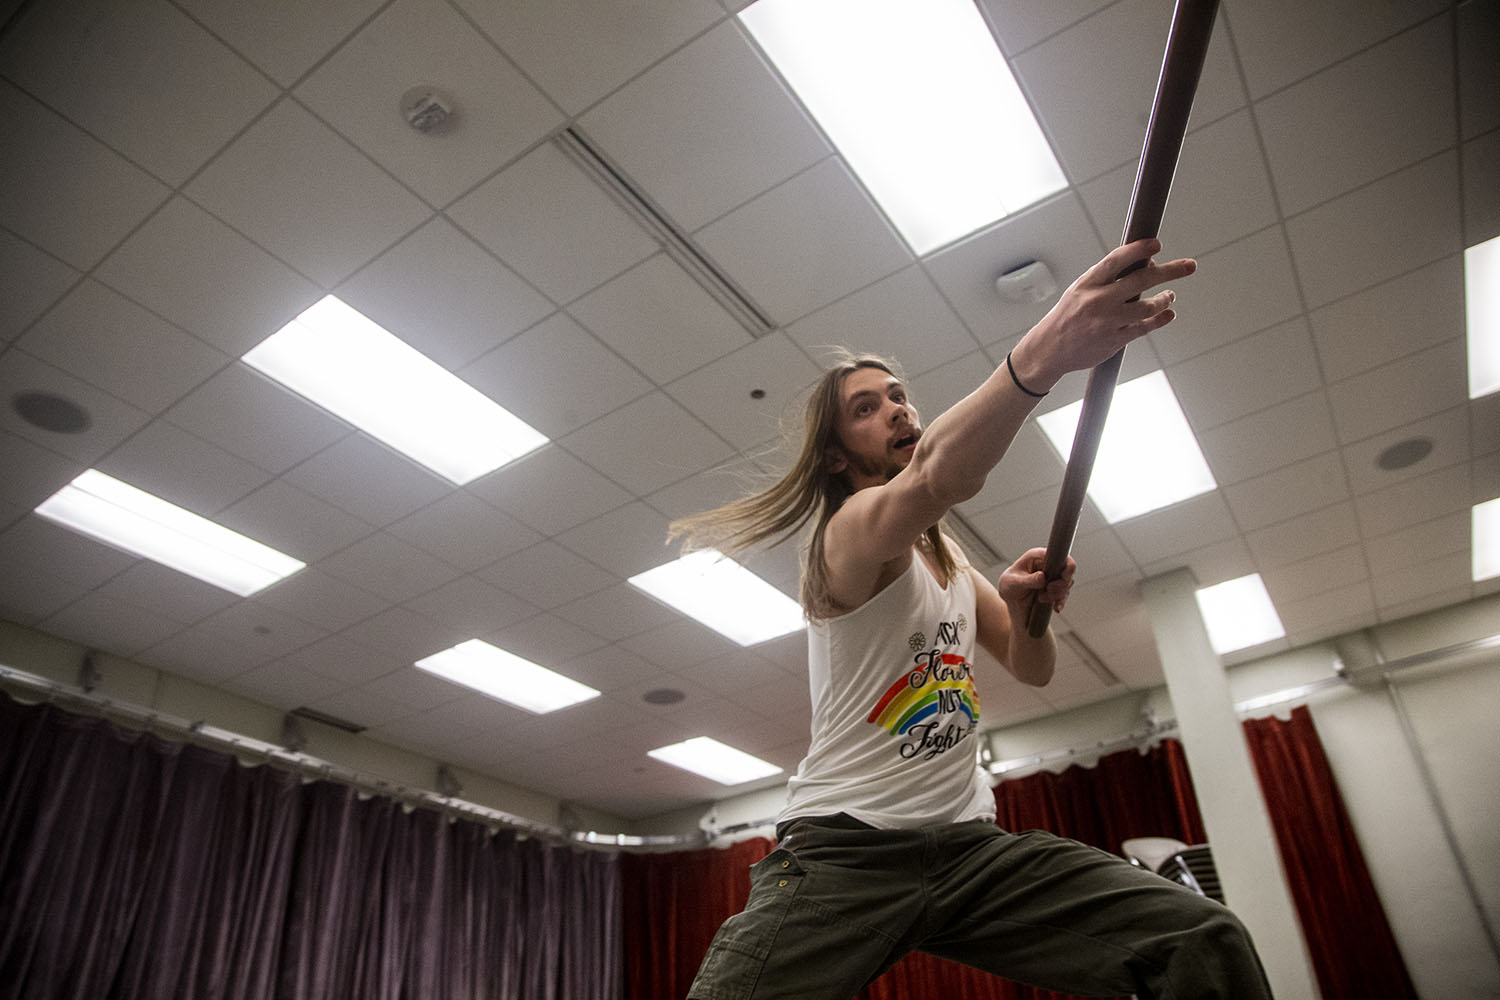 UI Junior Dante Benjegerdes demonstrates stage combat choreography at the Theatre Building on Monday, March 25, 2019. Although a competitive niche, Benjegerdes plans to pursue stage combat professionally. (Alyson Kuennen/The Daily Iowan)